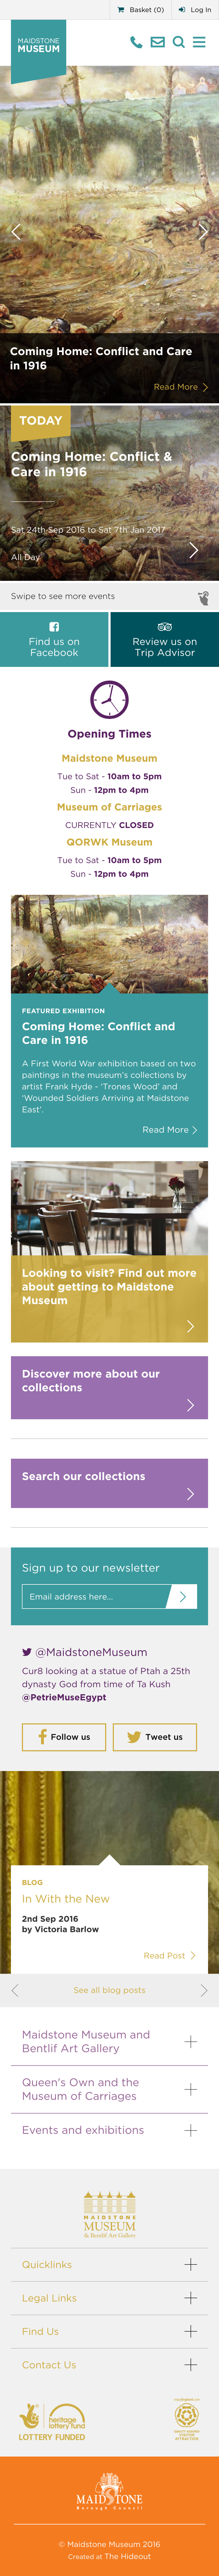 iphone-site-example-maidstone-museum